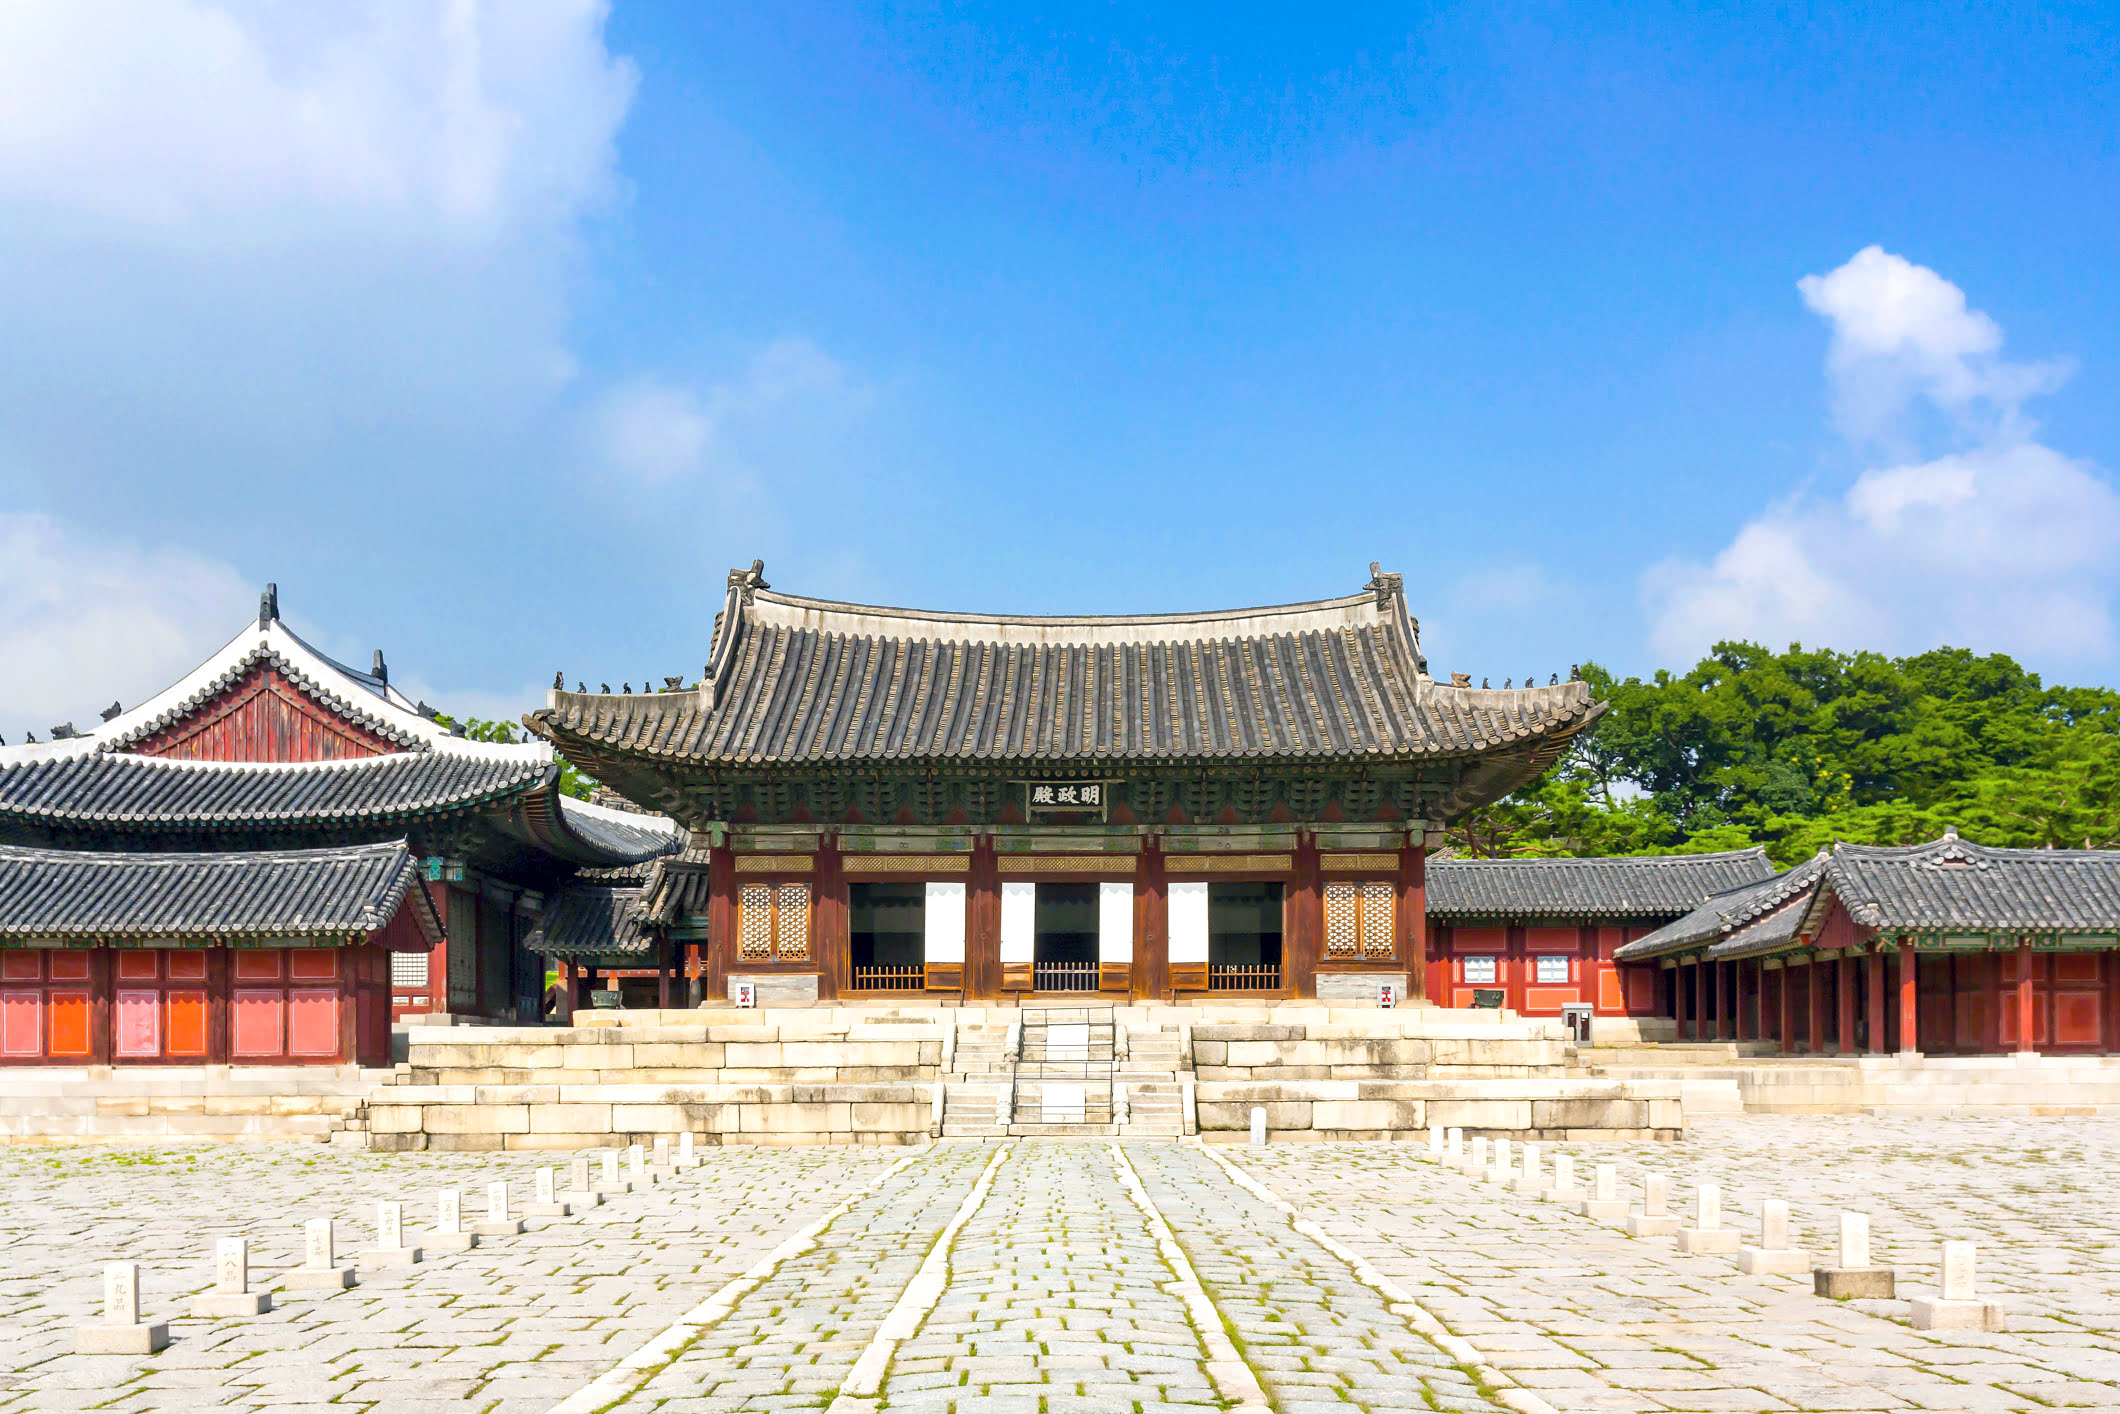 Experience Seoul attractions Changgyeong Palace - 5 Places to See On A Tour of South Korea's Capital